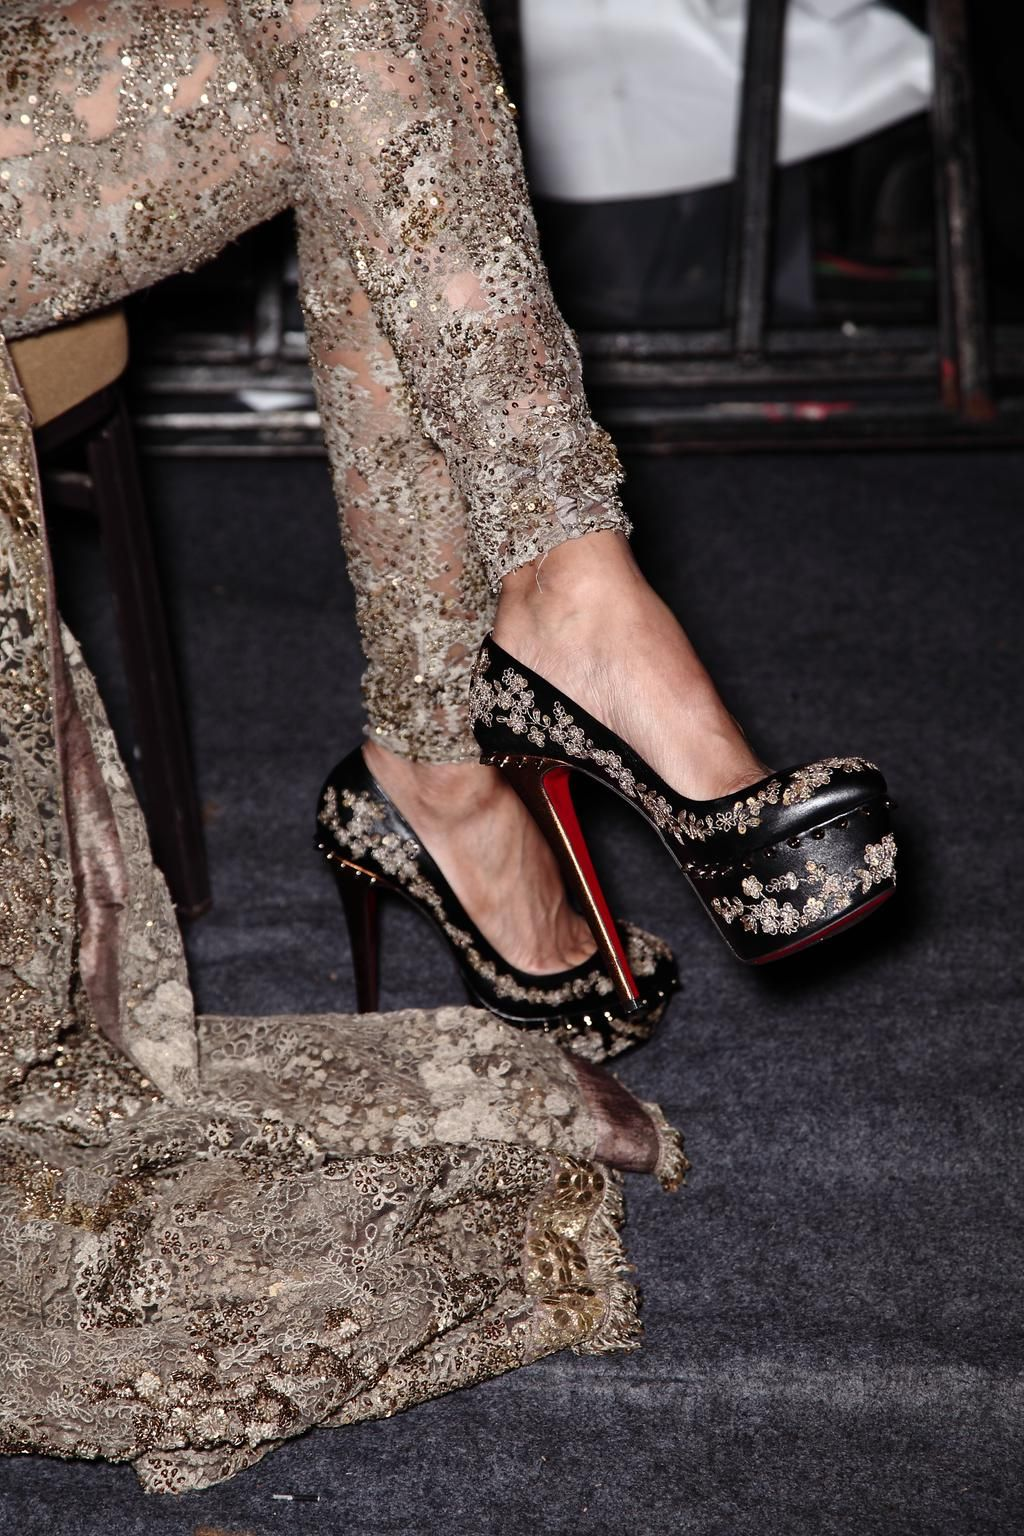 93cca9ff8532  louboutinworld Jul 31 At India Couture Week  AICW2015  Sabyasachi s   Baroque collection debuted in embroidered Christian Louboutin shoes